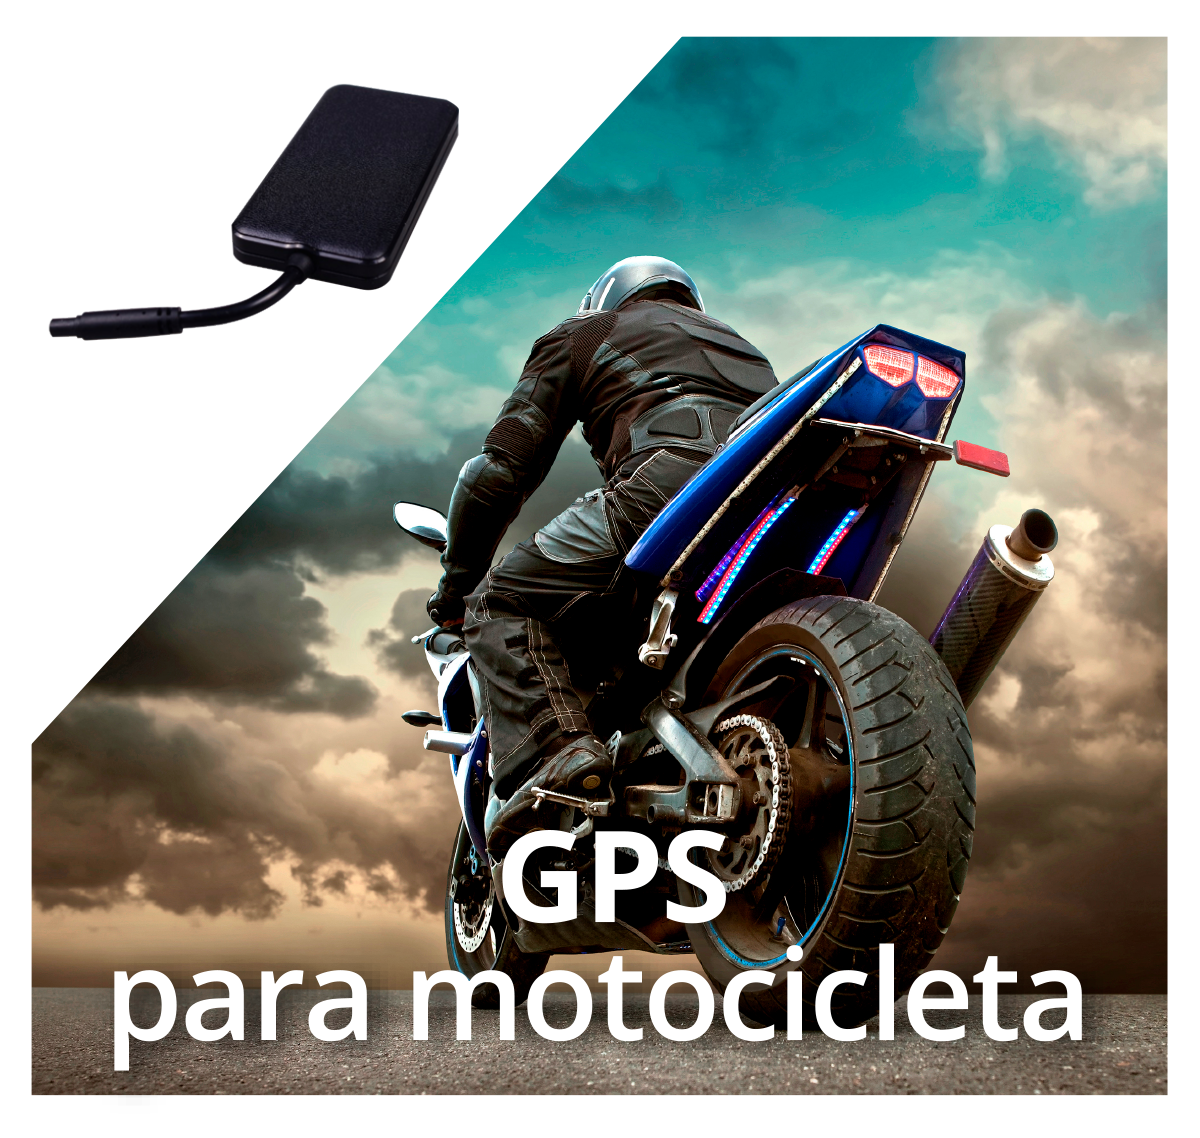 BBOX Security Seguridad guardias virtuales motocicleta - Servicio de Rastreo Satelital y GPS en Guadalajara | BBOX Security